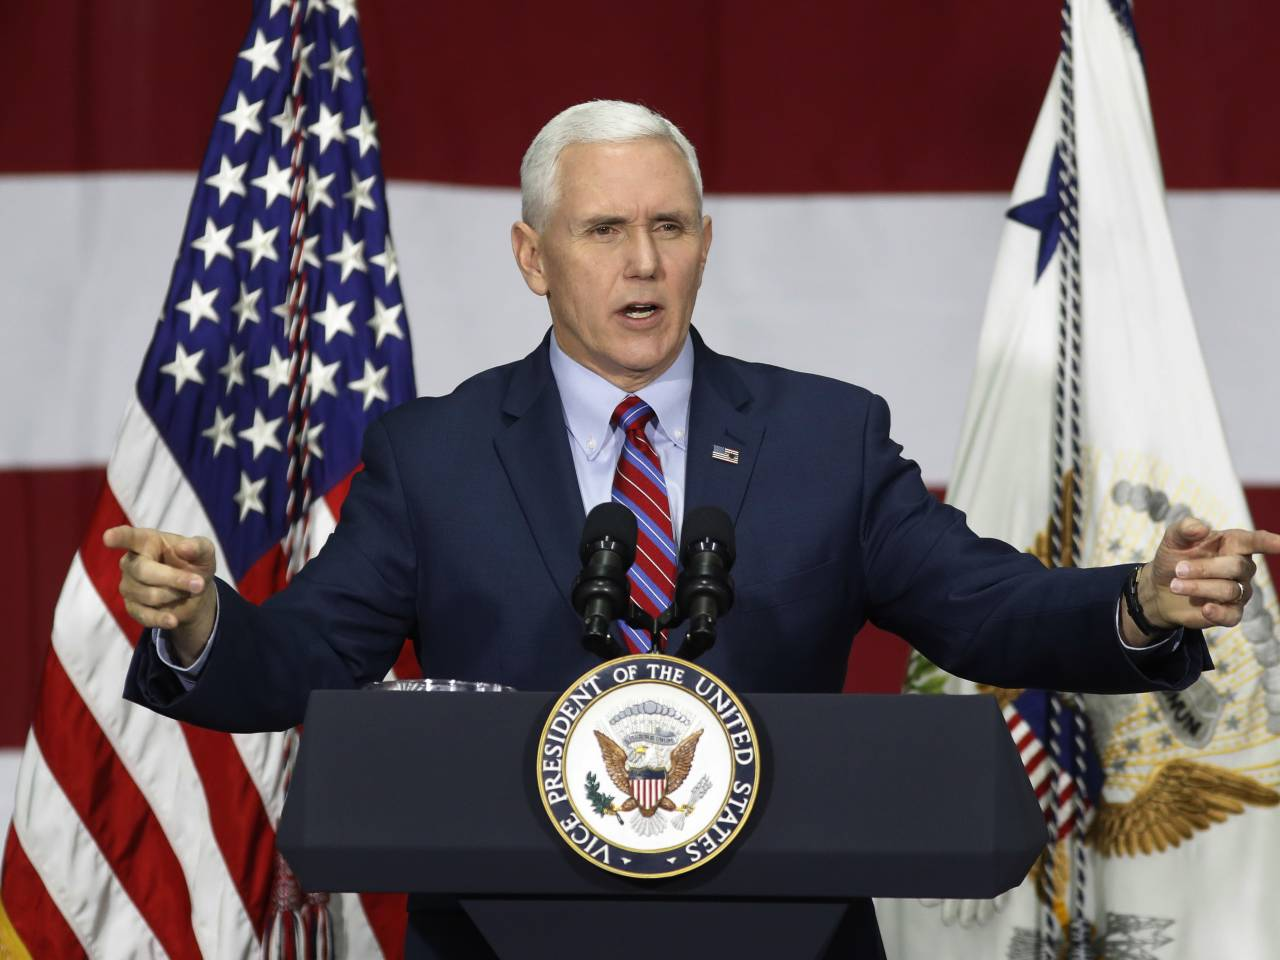 Mike Pence responds to Trump's Twitter humiliation of Jeff Sessions